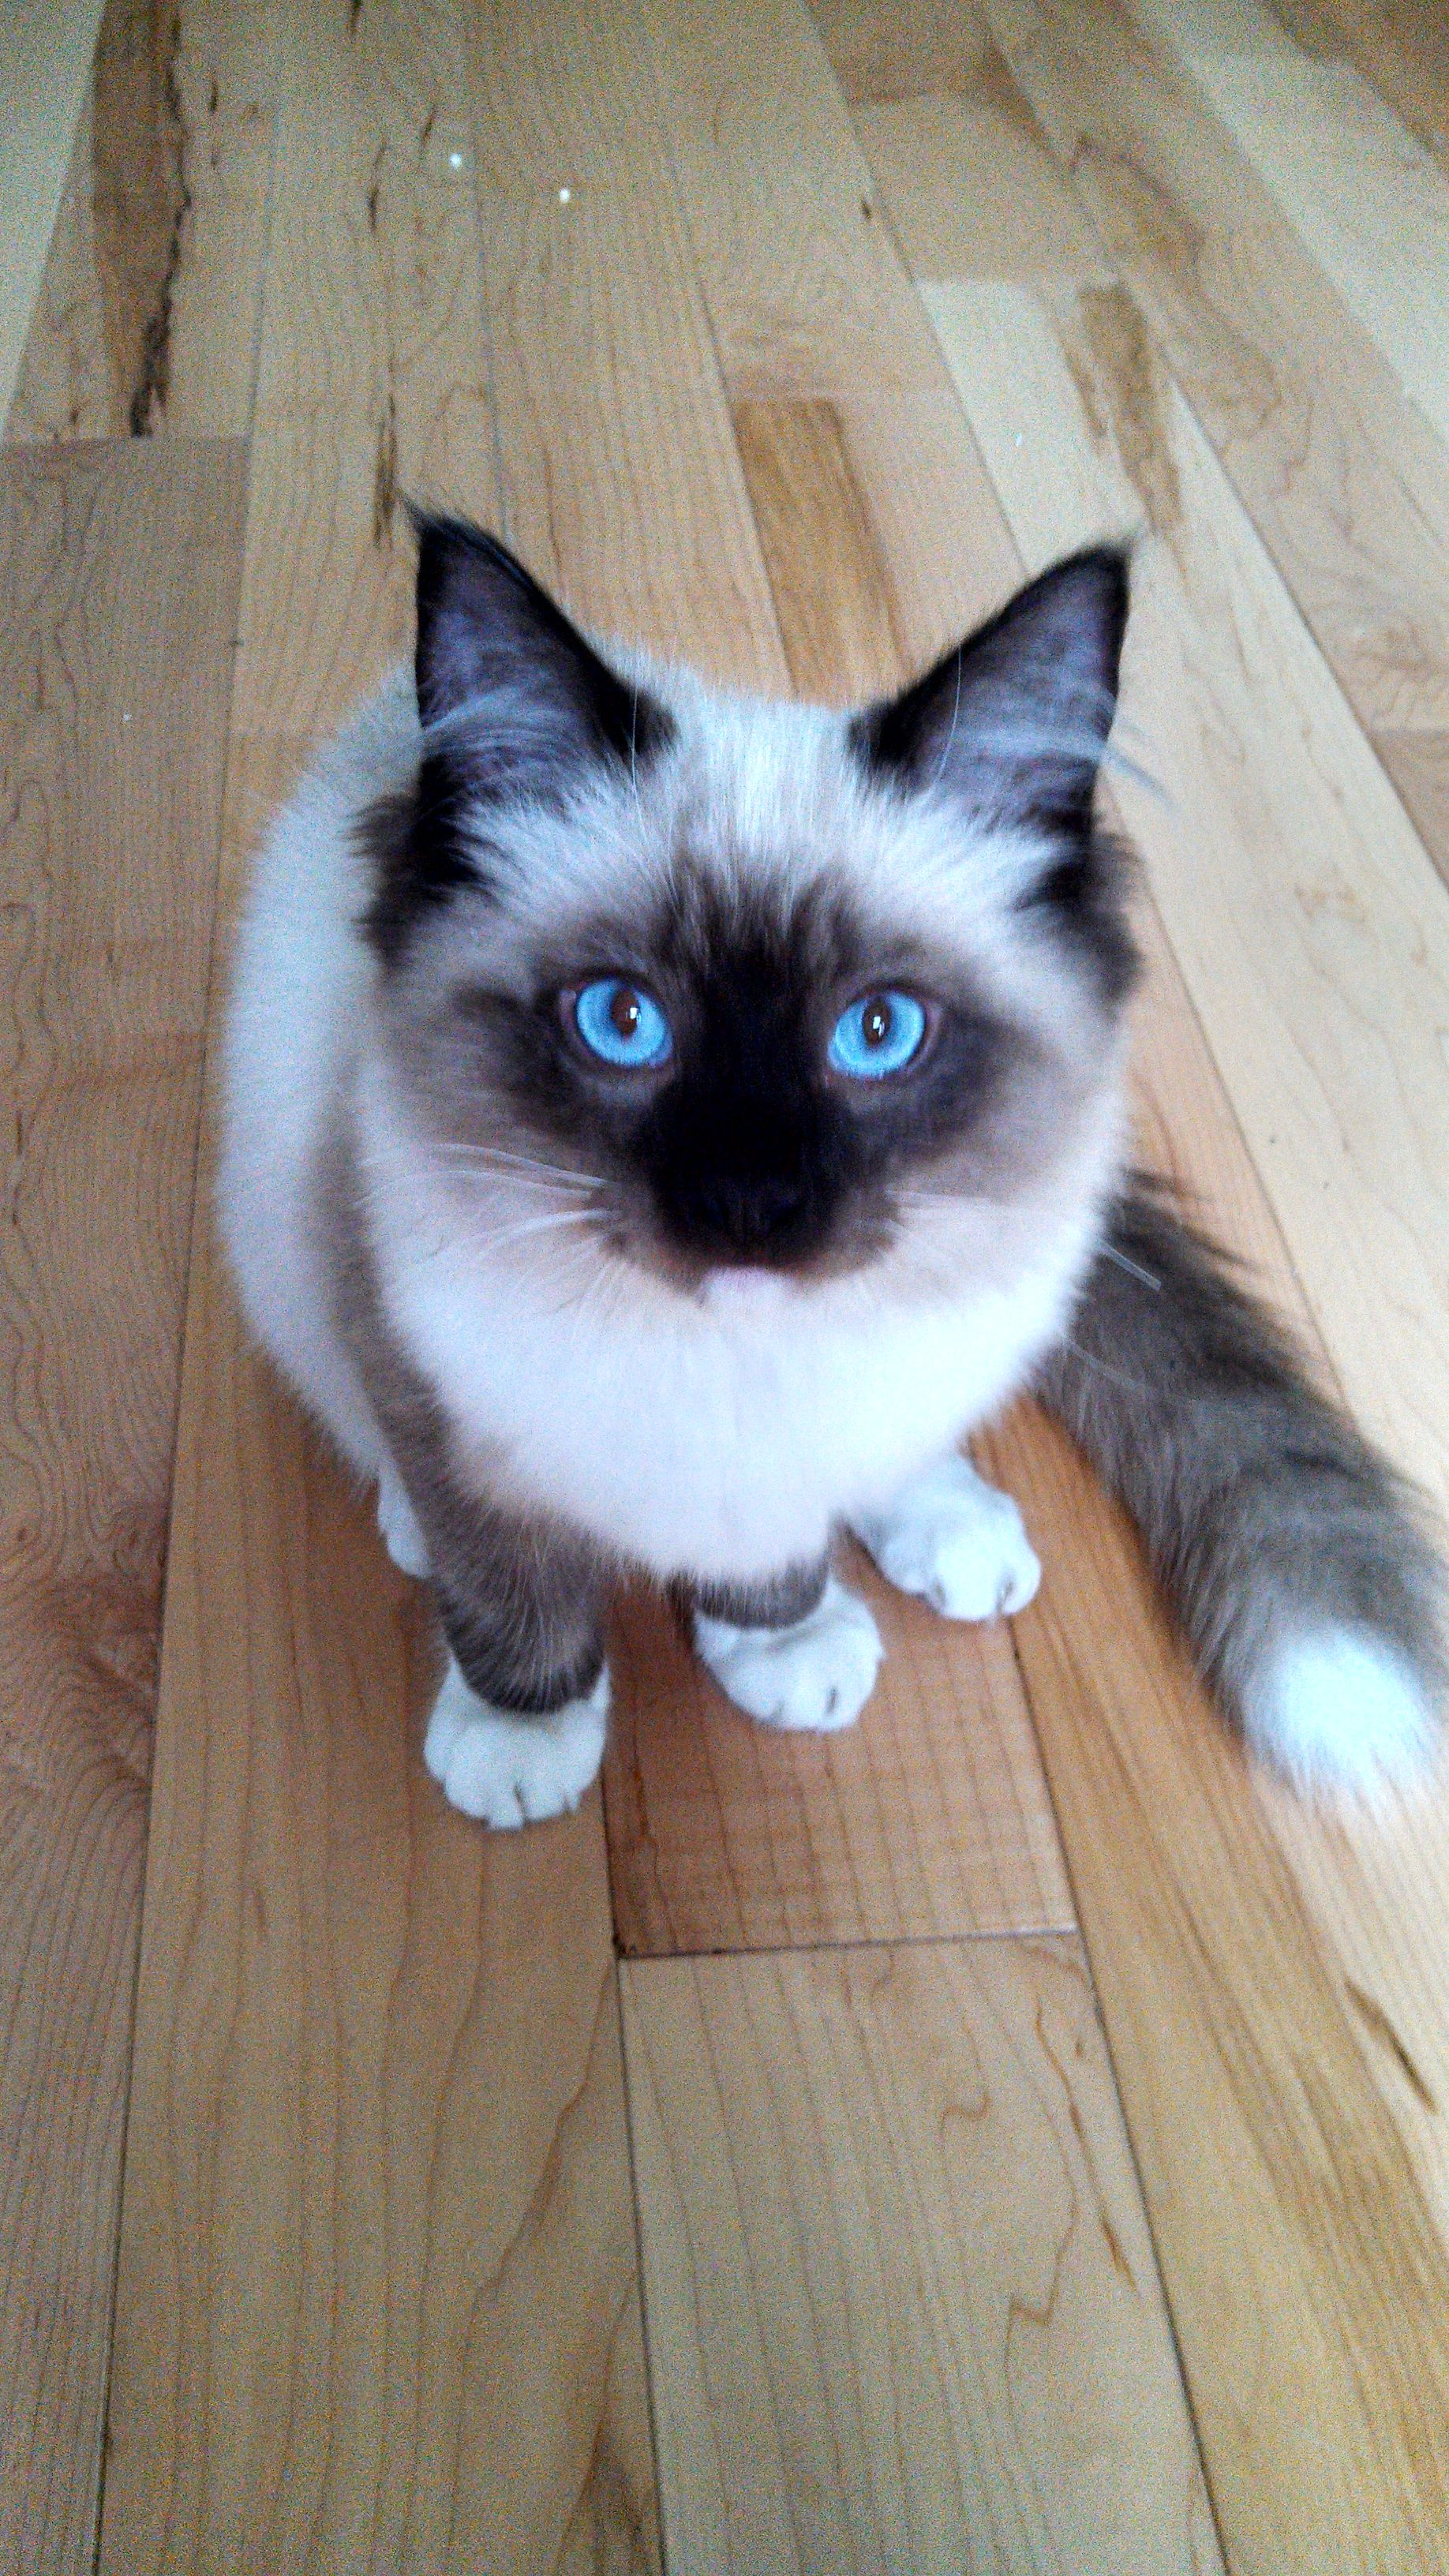 Theo's gorgeous eyes and coloring once more.5 month old Seal mitted male ragdoll with white tipped tail.